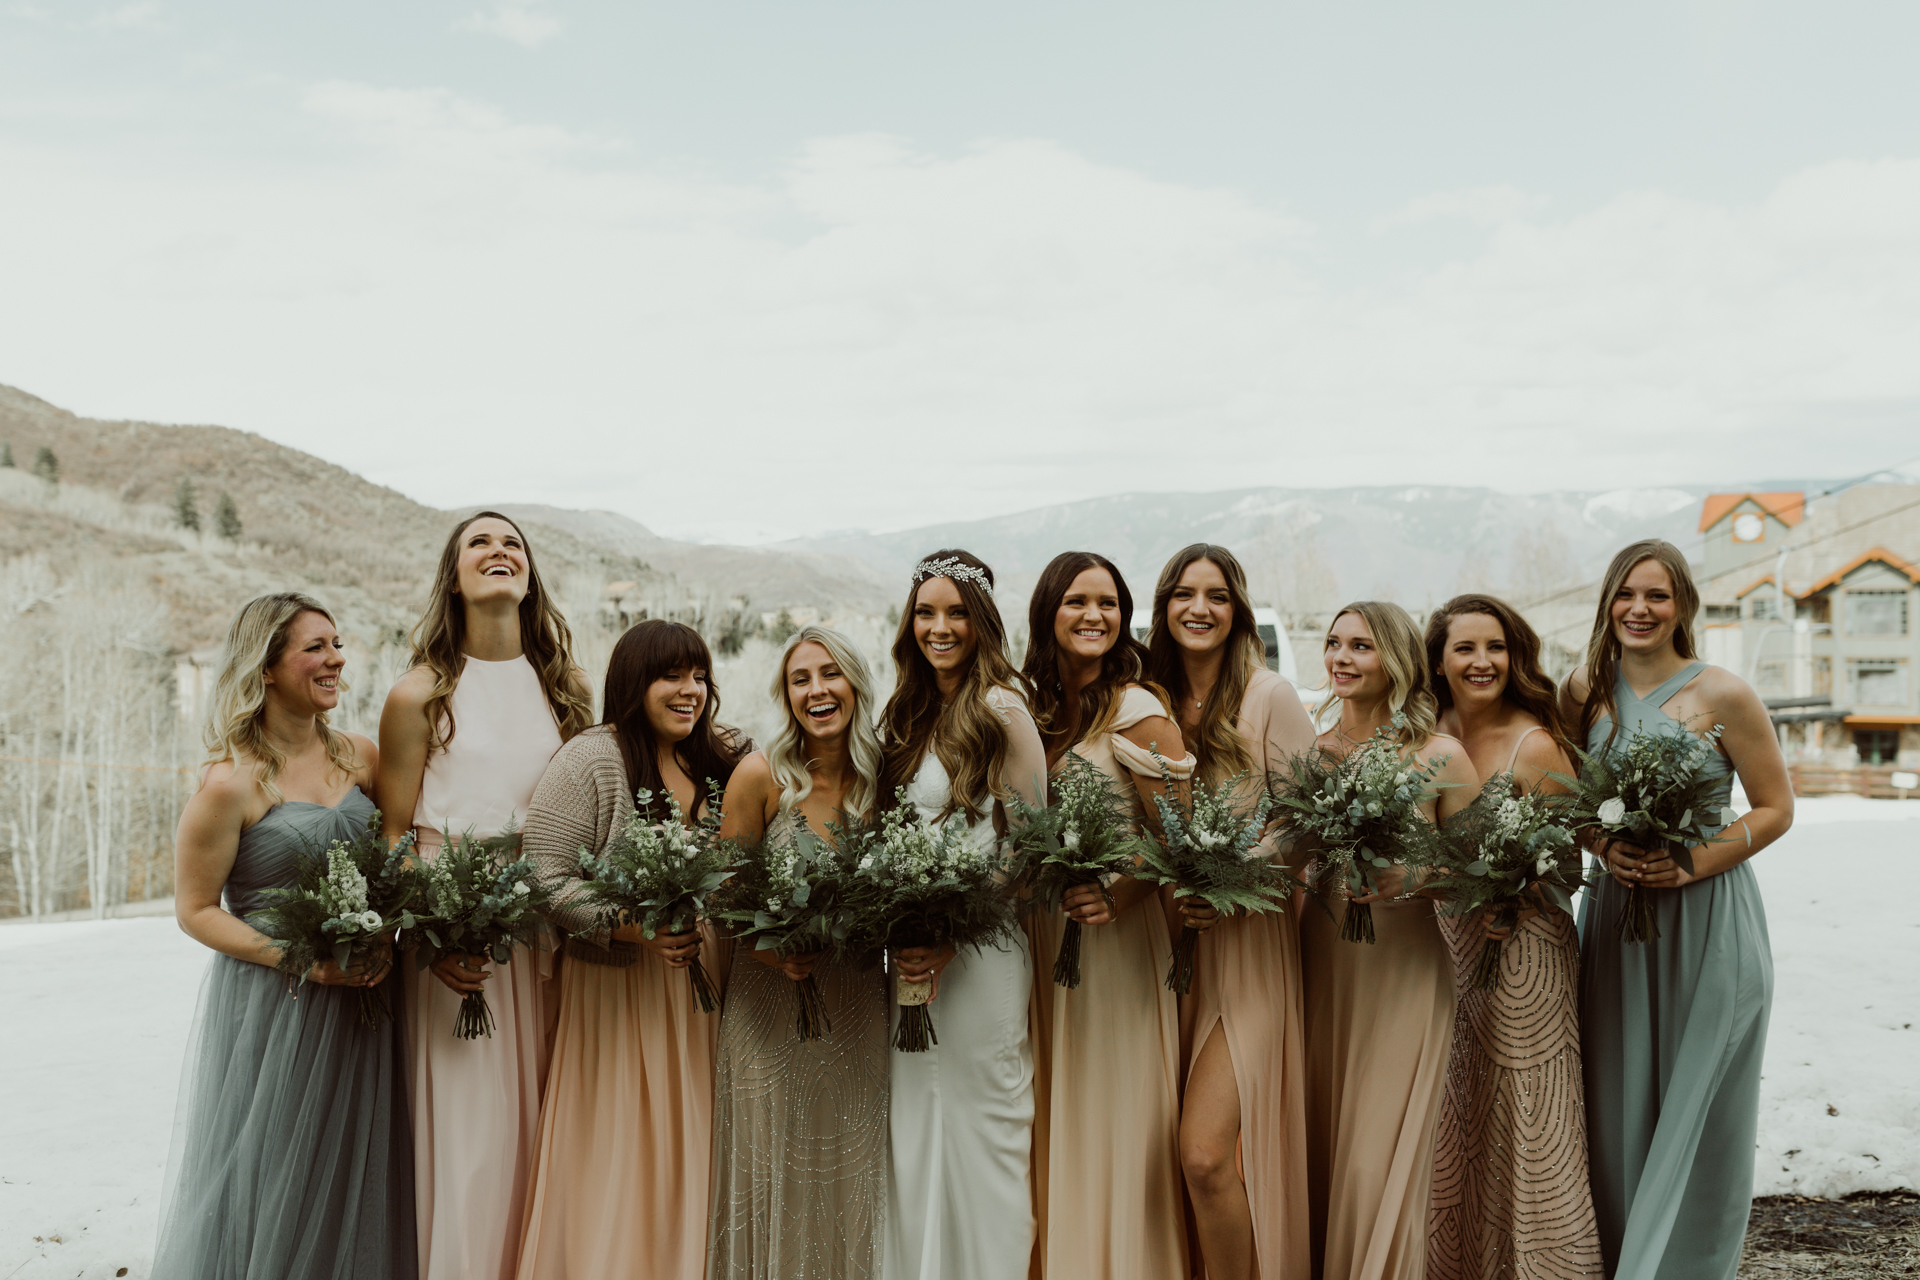 aspen-colorado-boho-mountain-wedding-1015.jpg